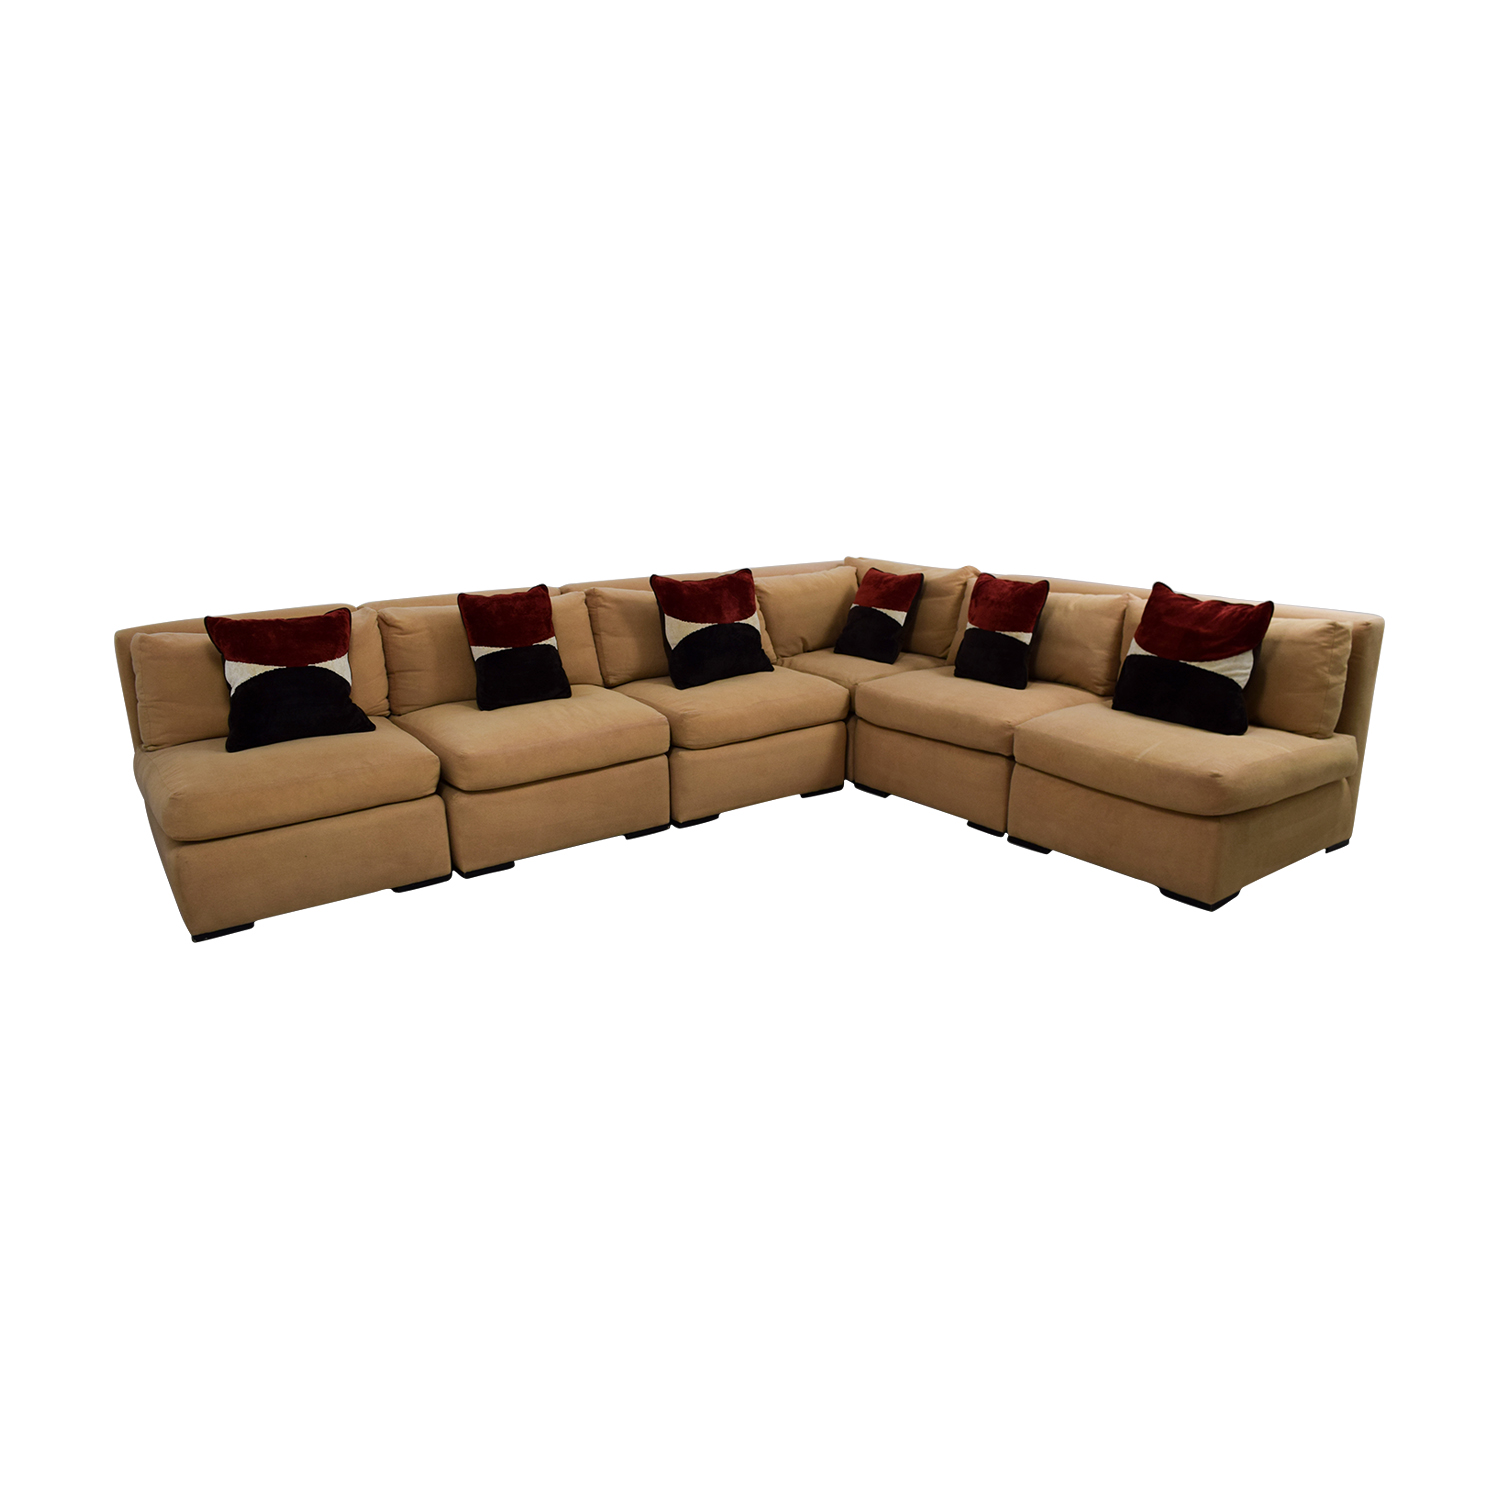 Kreiss Kreiss Tan L-Shaped Sectional with Toss Pillows for sale